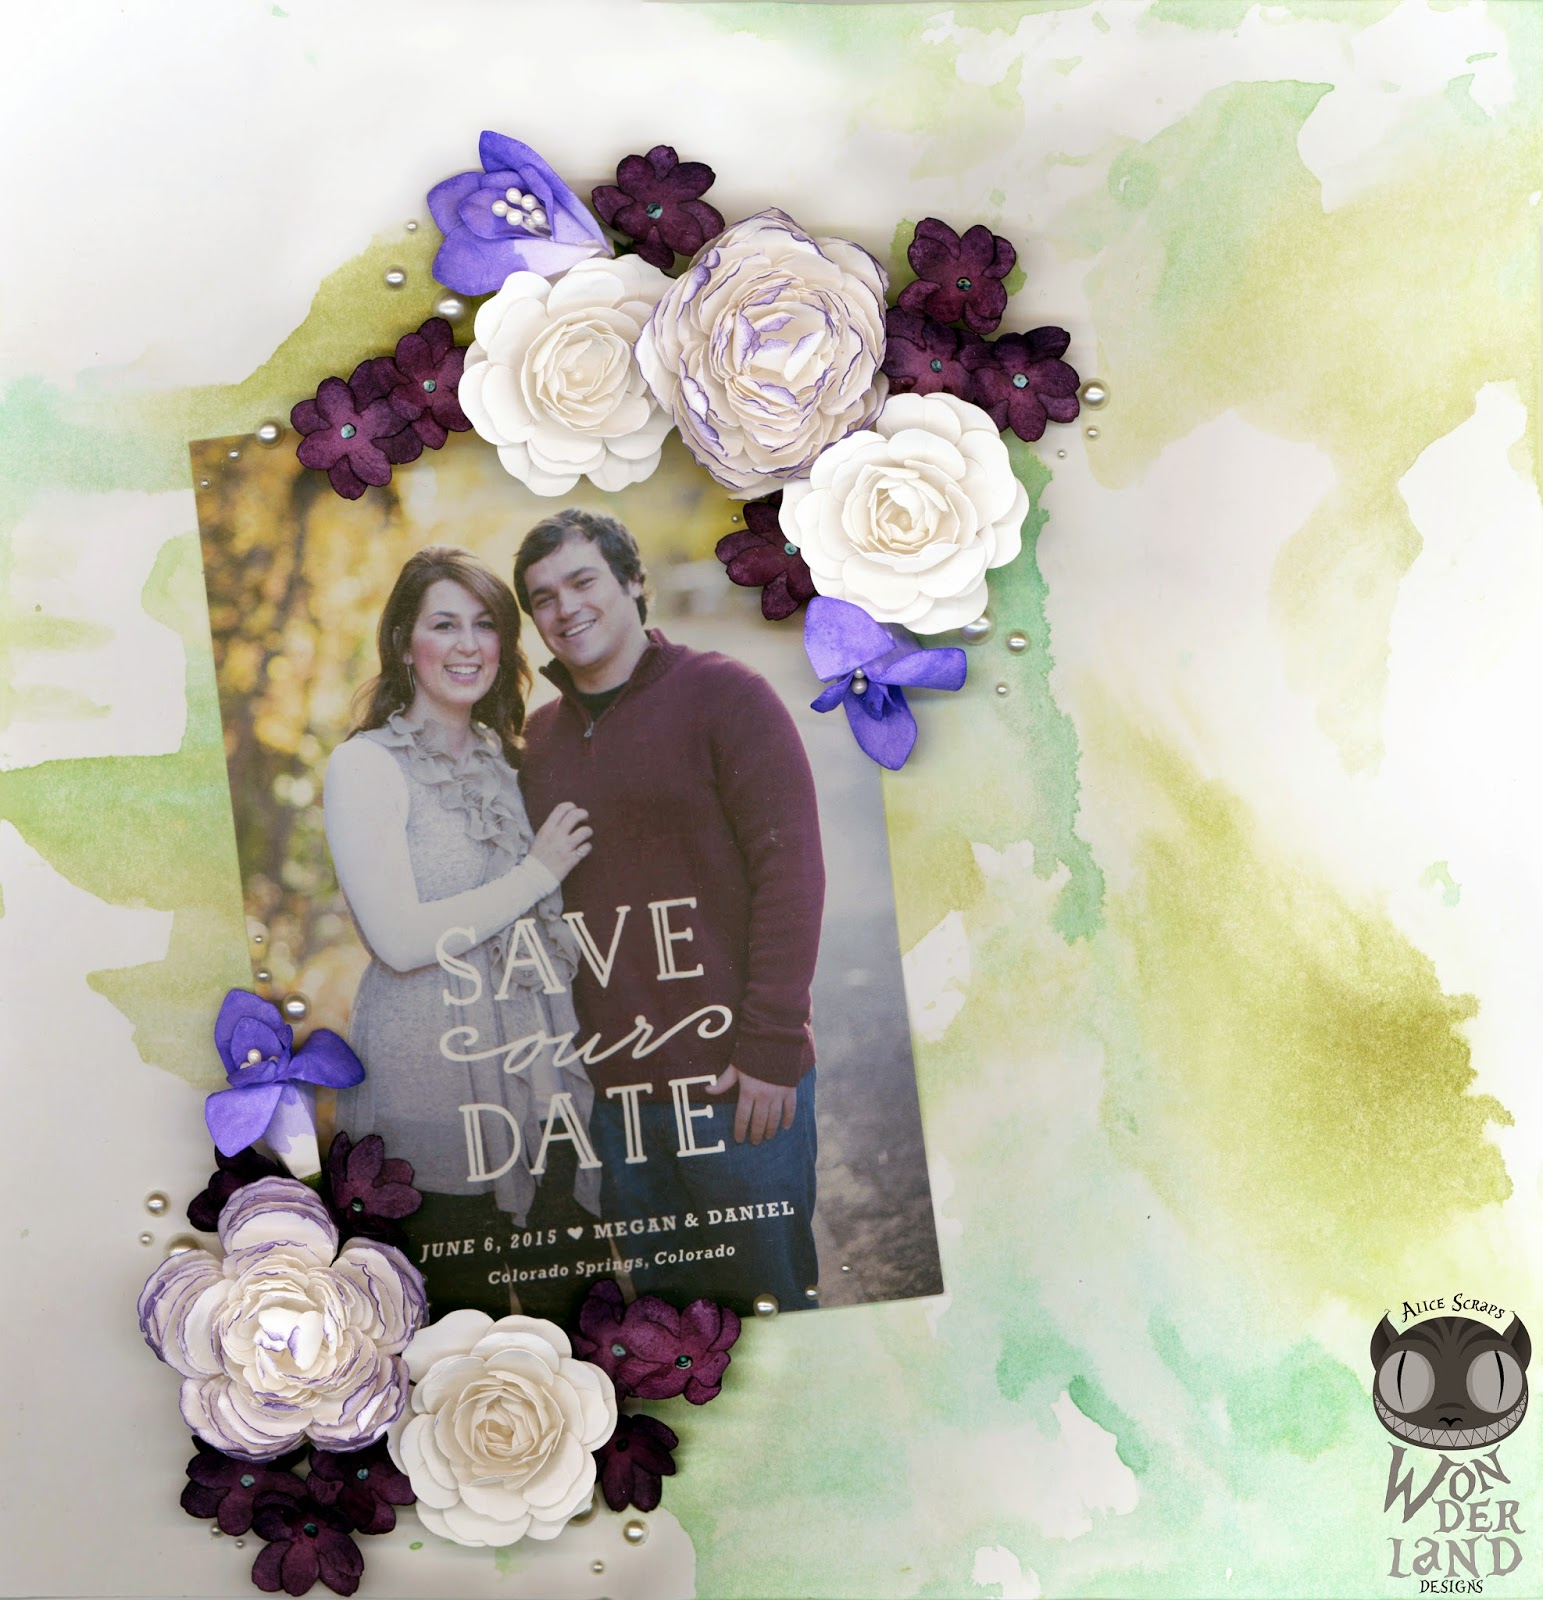 Bridal Shower Layout Gift by Alice Scraps Wonderland | Handmade flowers really add to the personalization of this scrapbook layout.